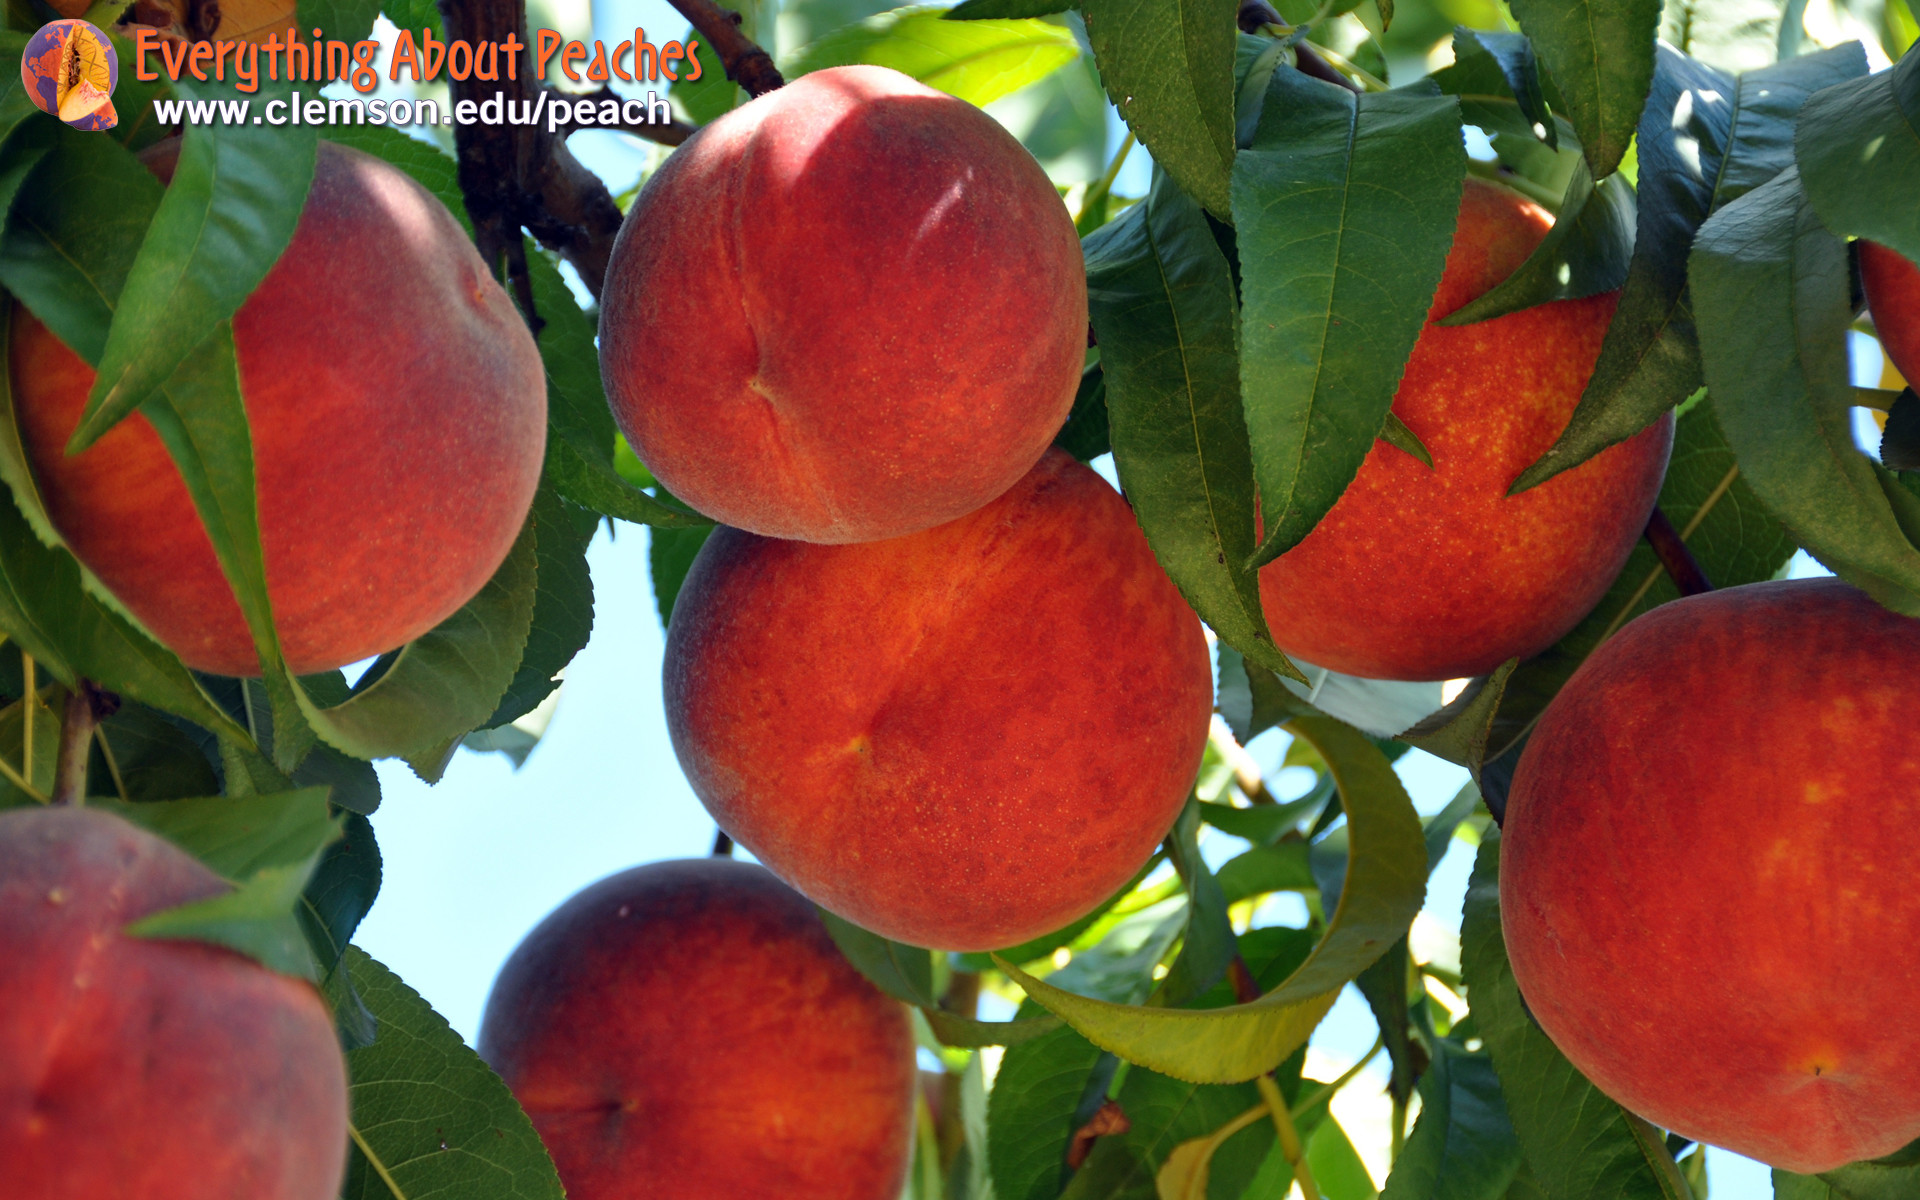 ripe peaches on a tree with bright blue sky background